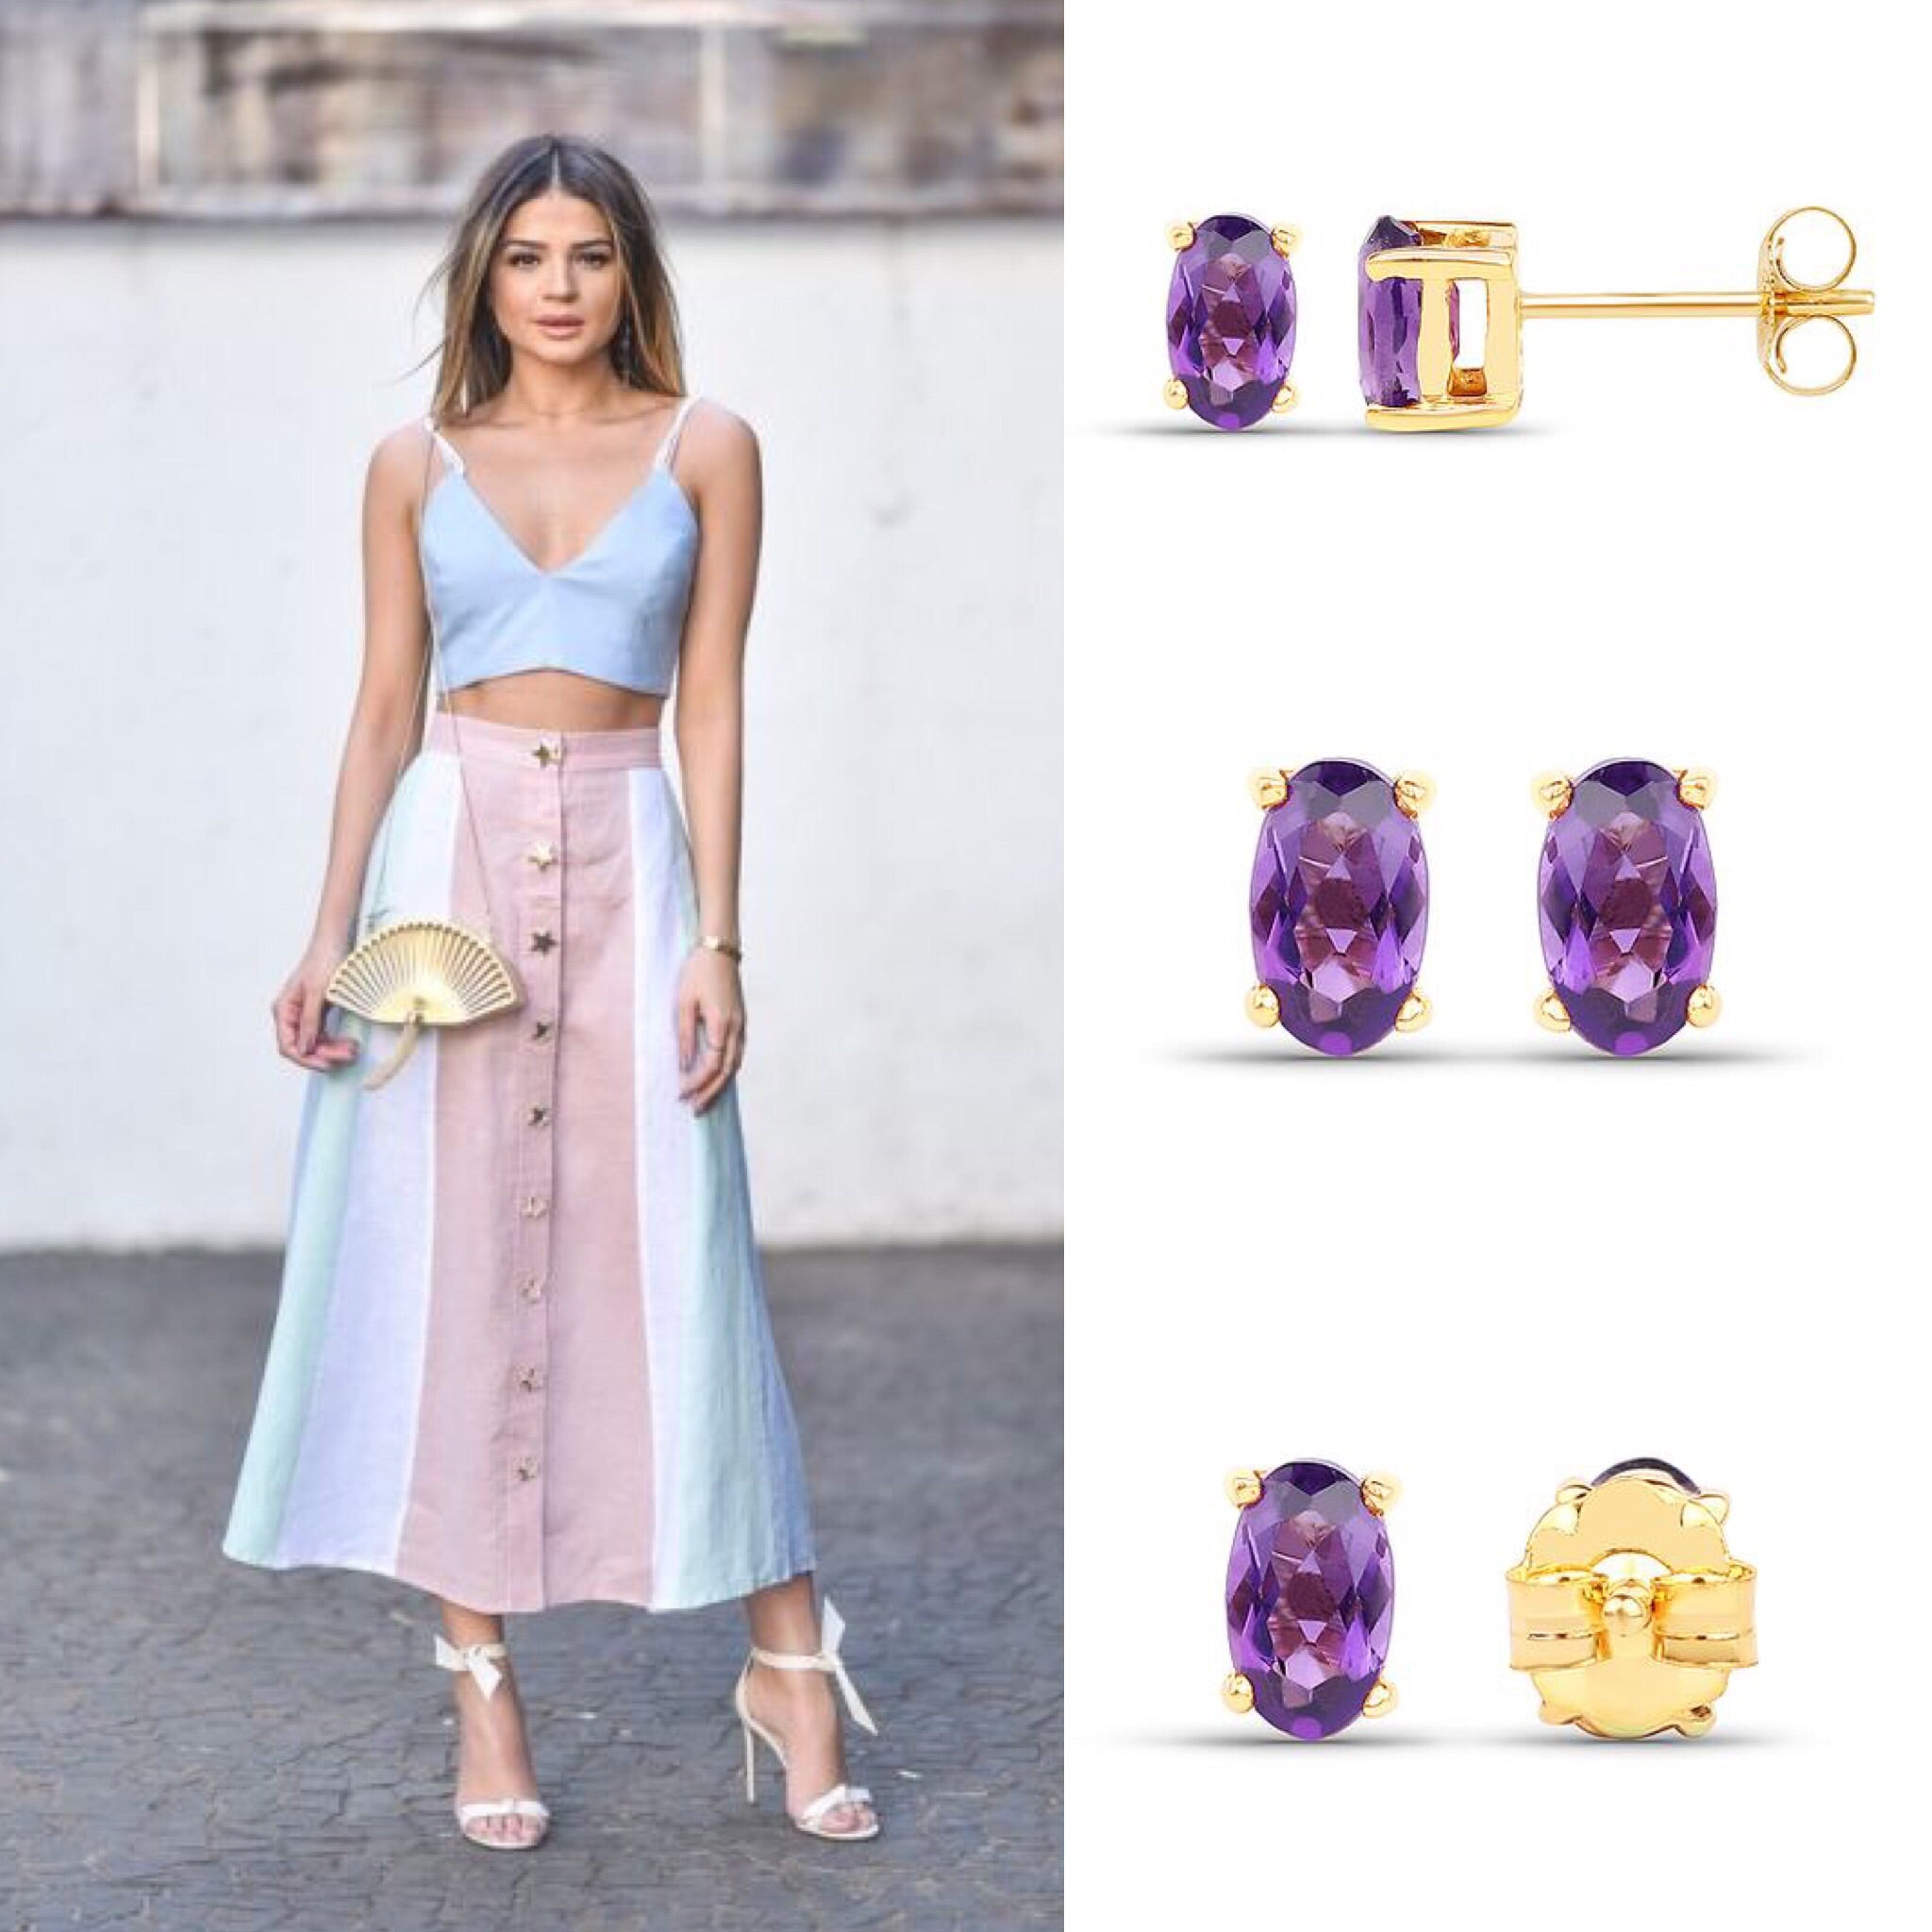 Solid Gold 0.42 Carat  Amethyst Earrings